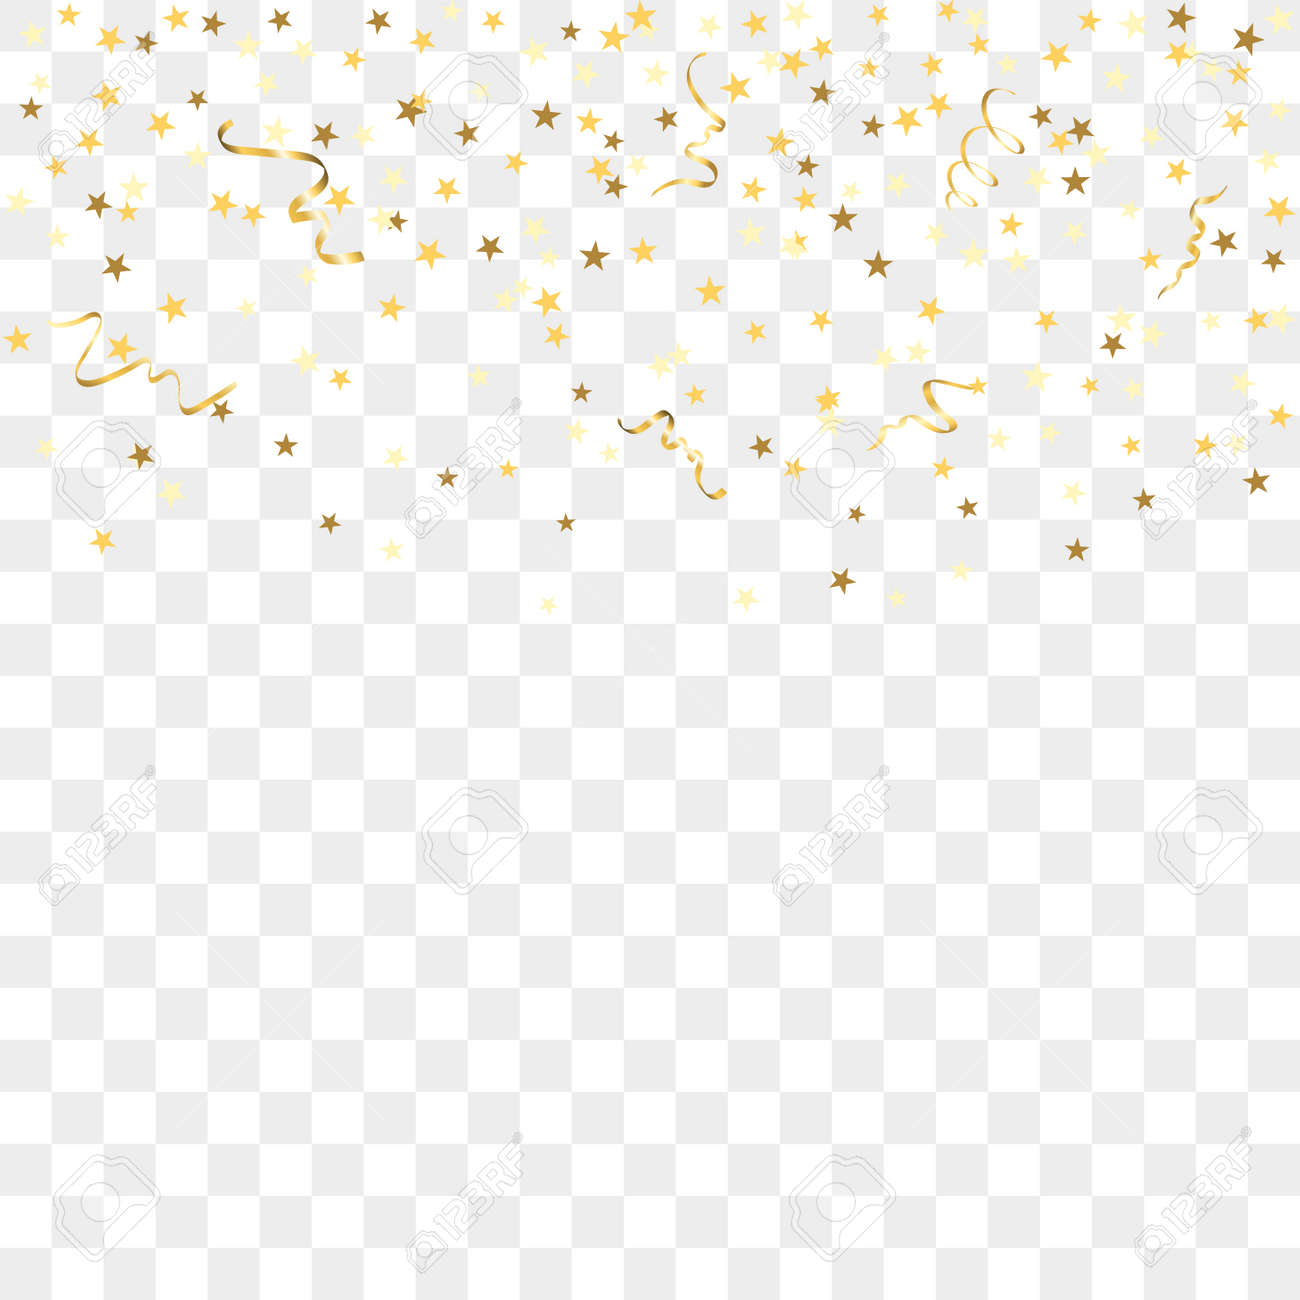 Confetti background vector golden confetti background - Vector Illustration Gold Star Confetti Celebration Isolated On Transparent Background Falling Golden Abstract Decoration For Party